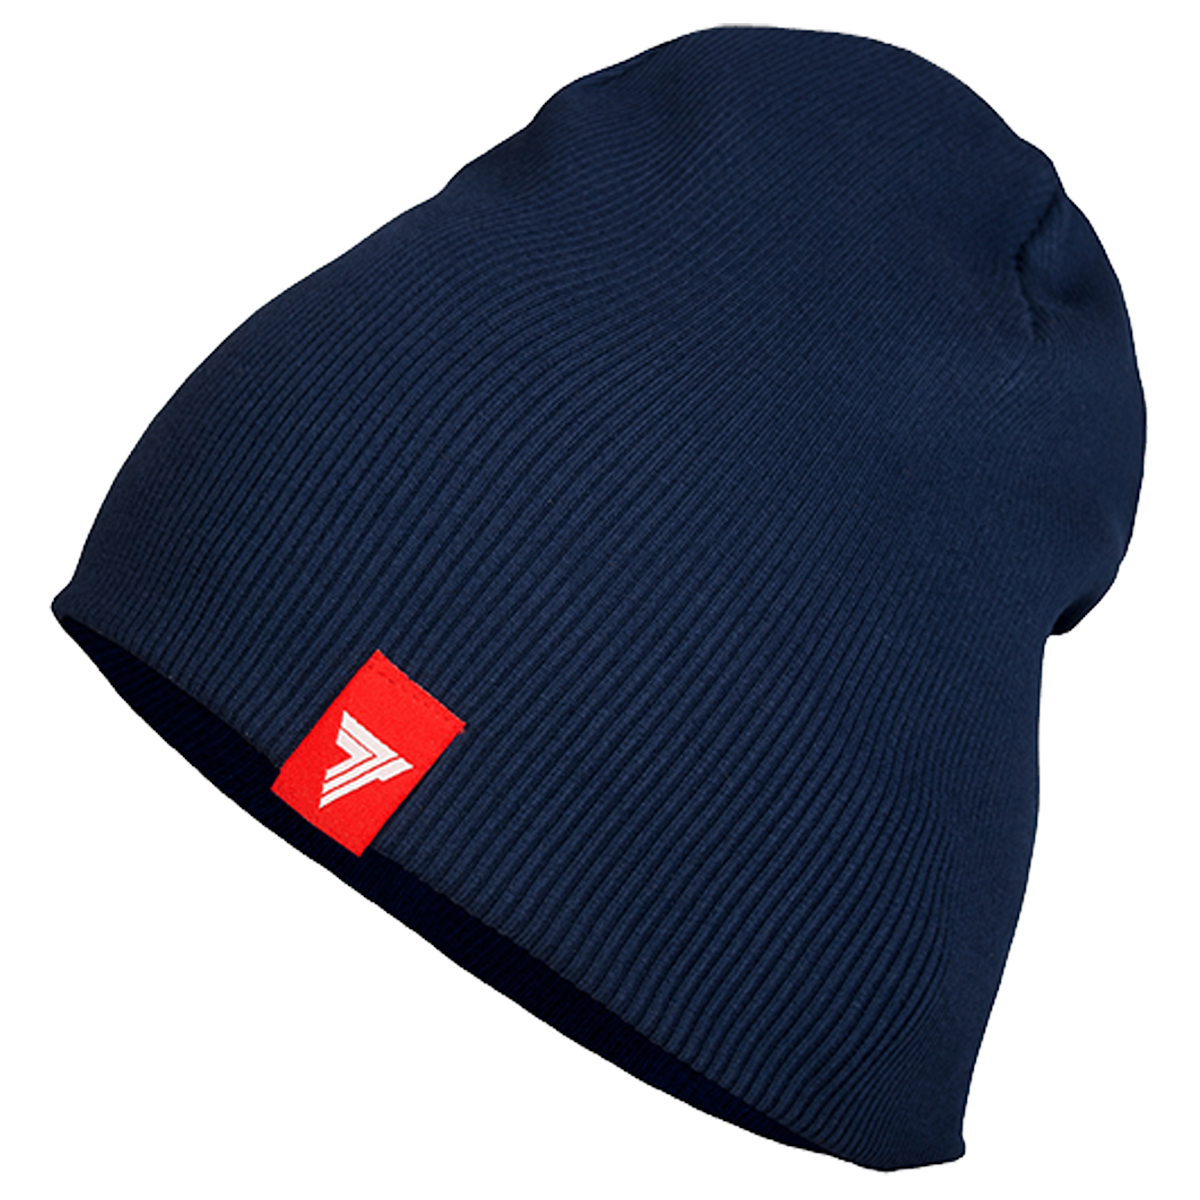 WINTER CAP 003 - NAVY-BLUE